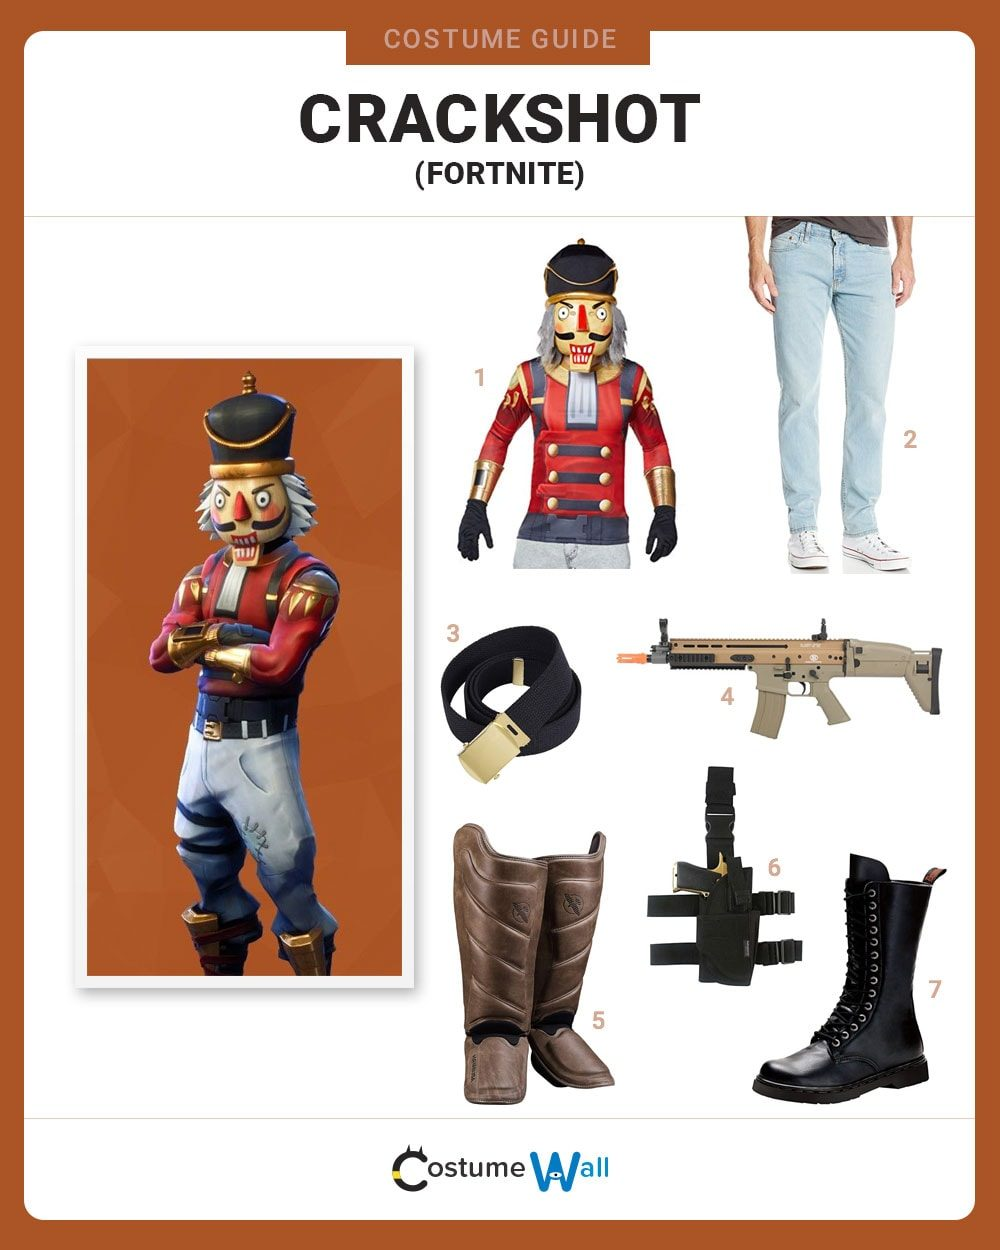 Crackshot Costume Guide